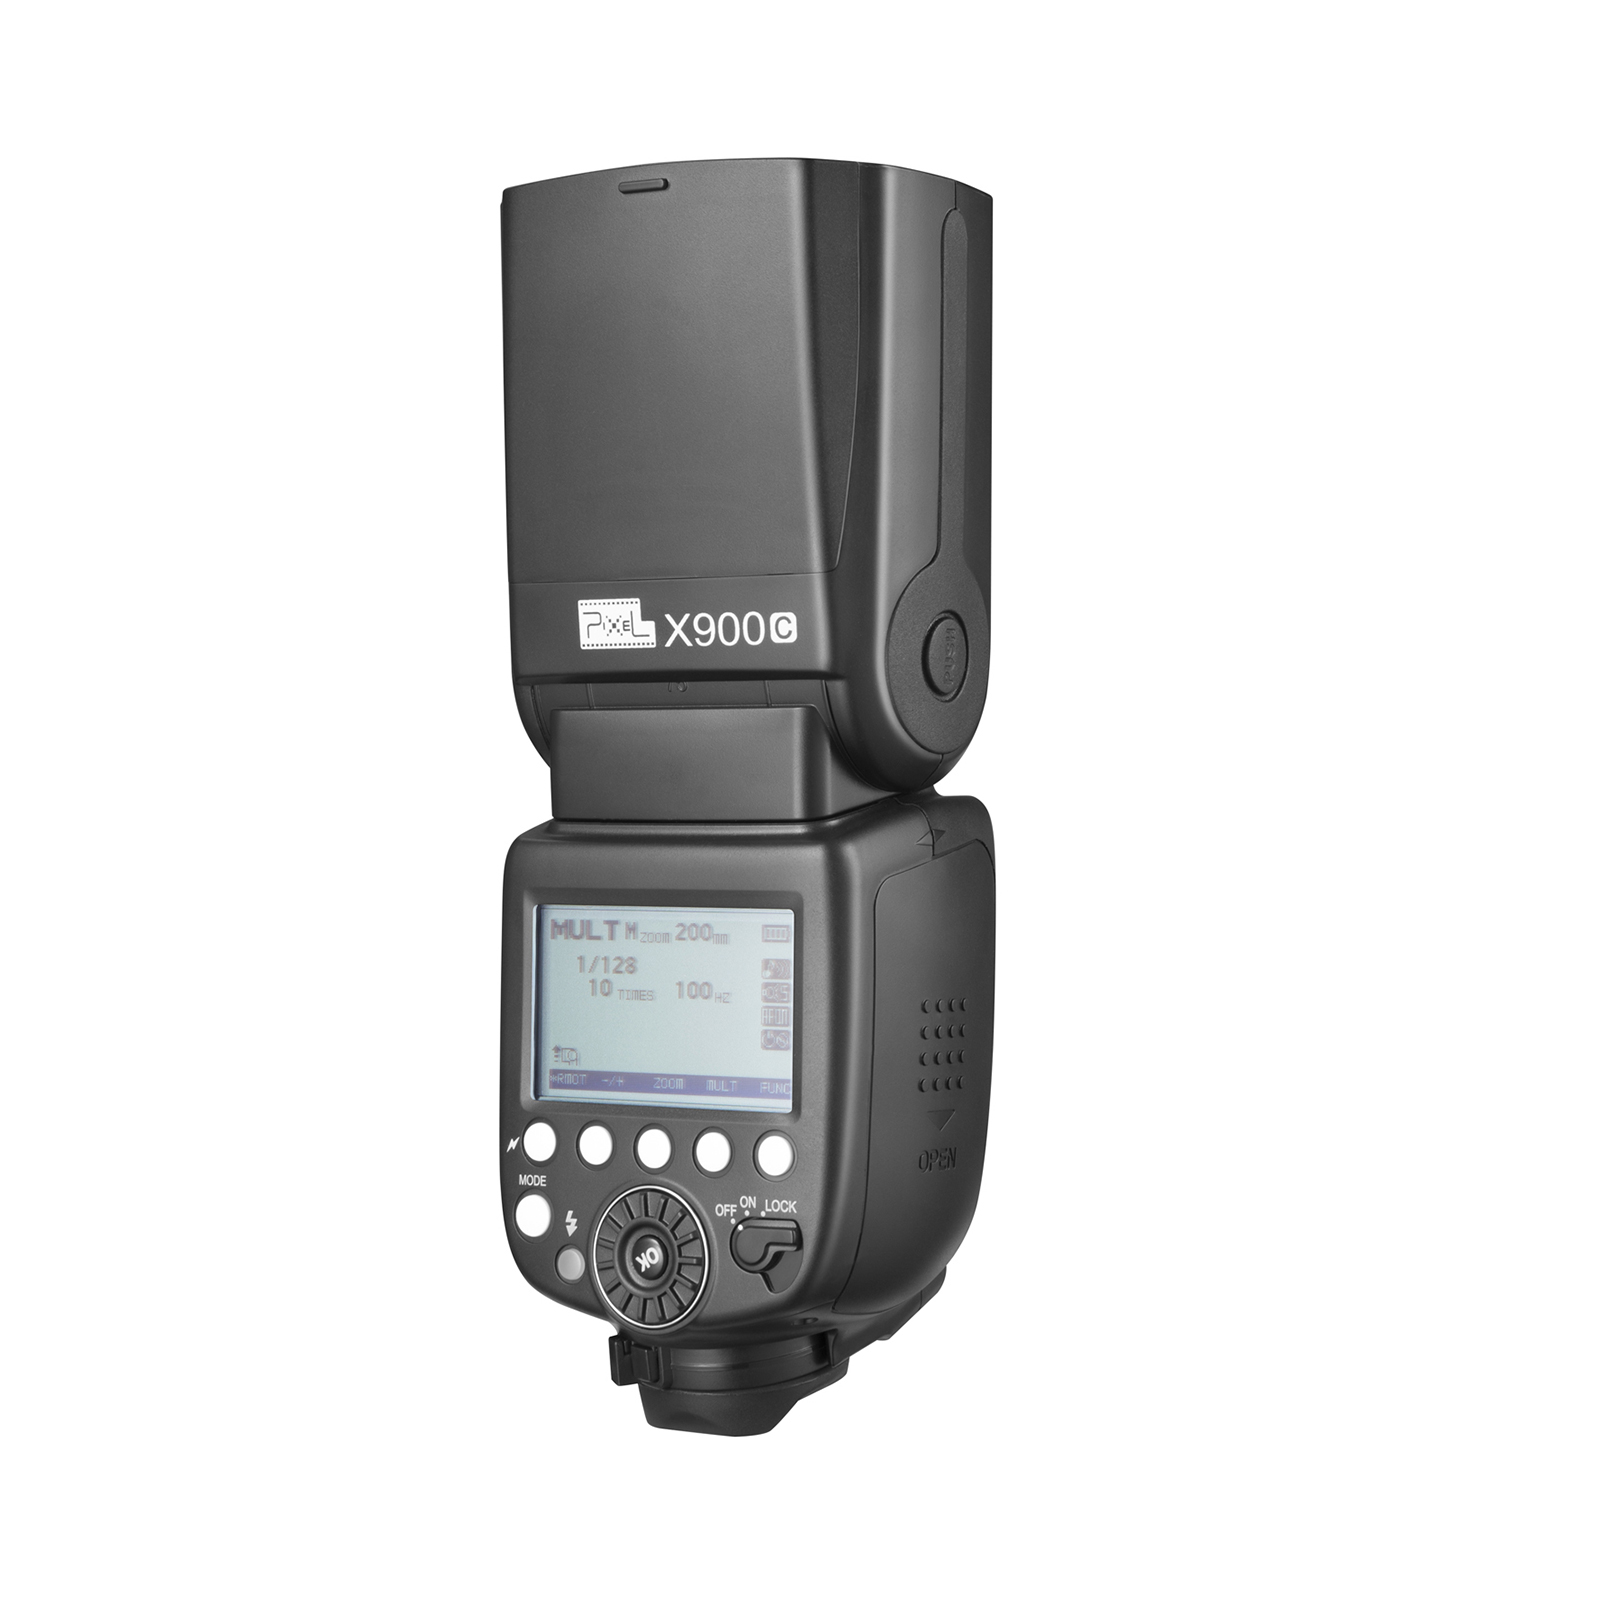 Pixel X900 Lithium Battery Speedlite For Canon, high speed synchronization and powerful performance.